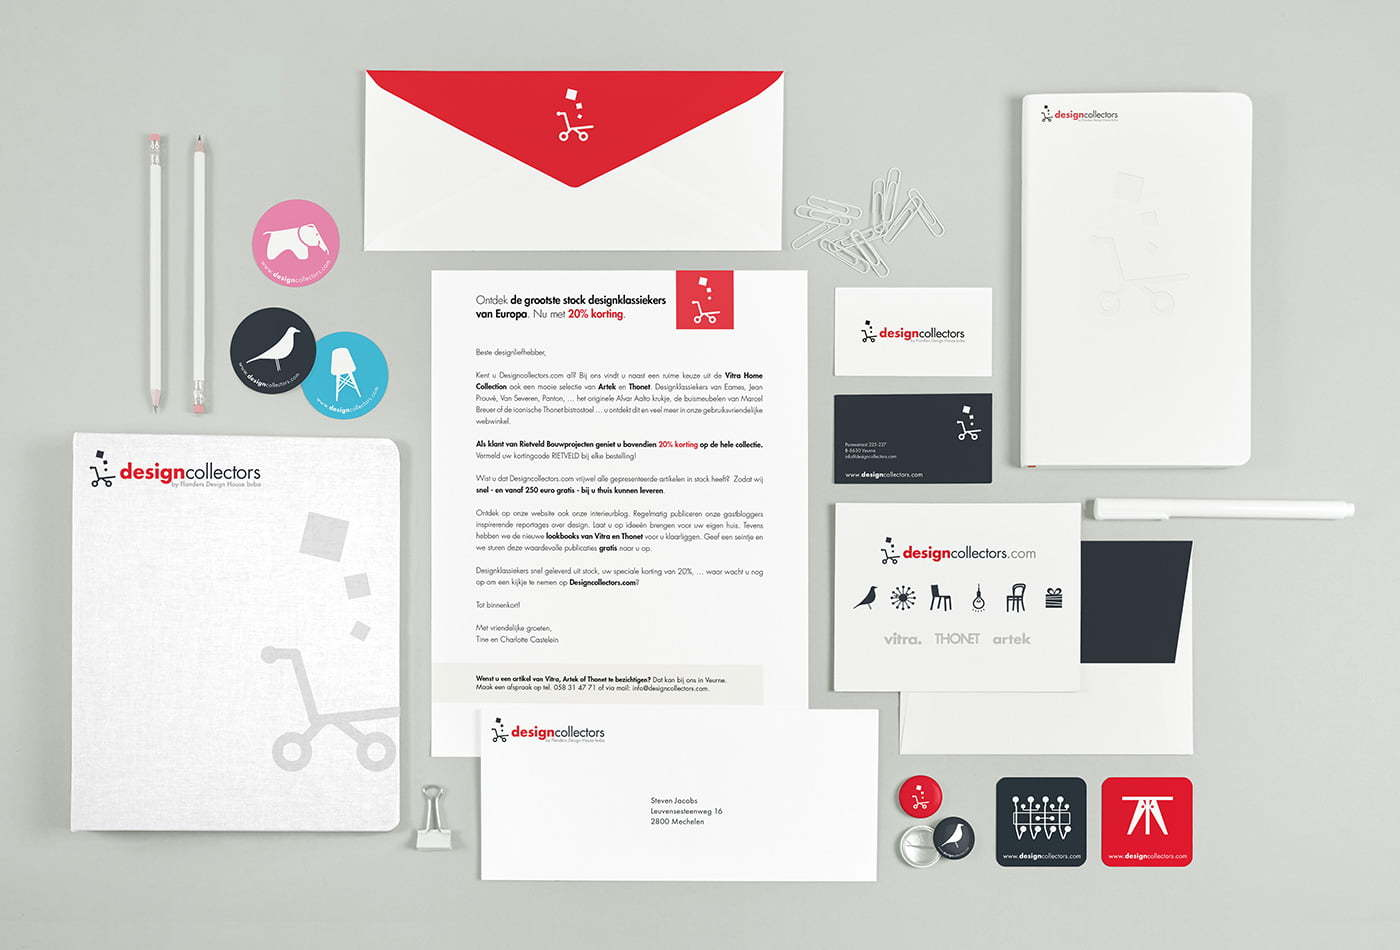 Designcollectors branding material & stationery